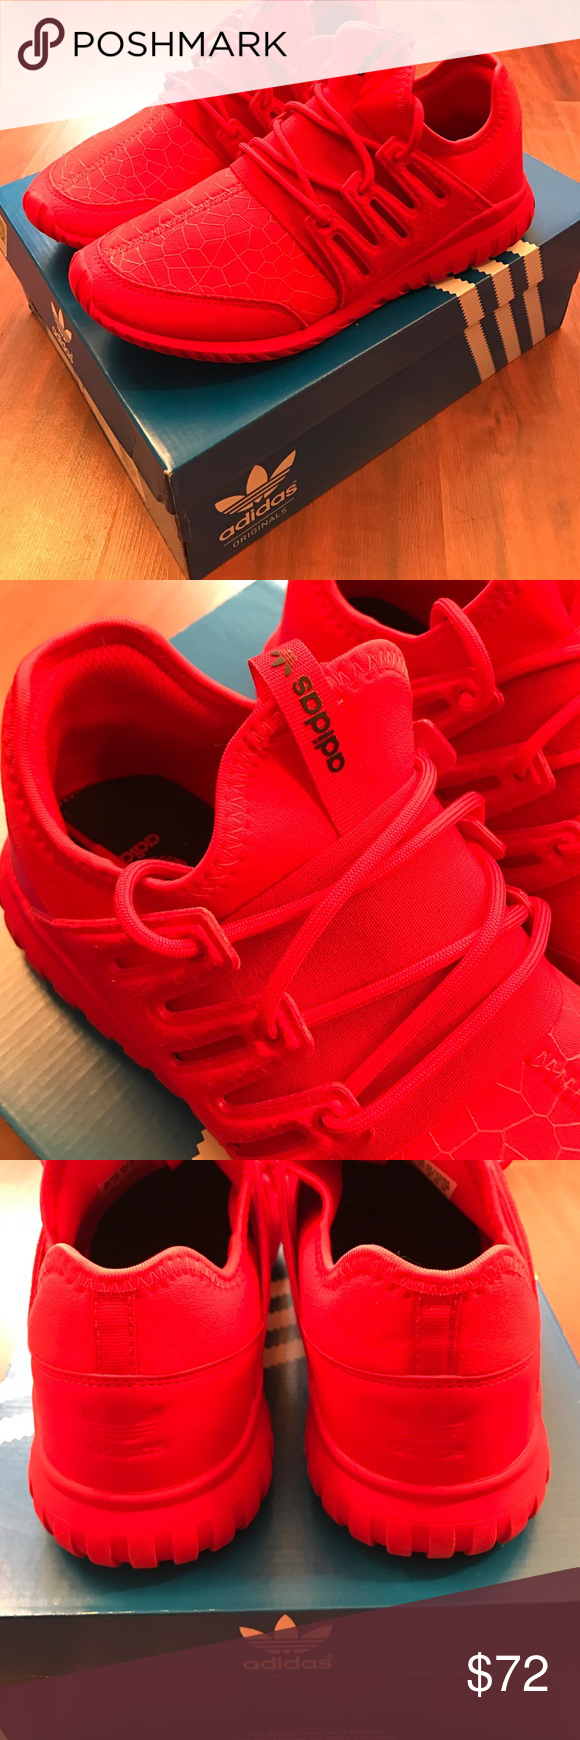 online retailer 317d7 72a2e Adidas Tubular Radial Shoes ALL RED, brand NEW. Adidas ...